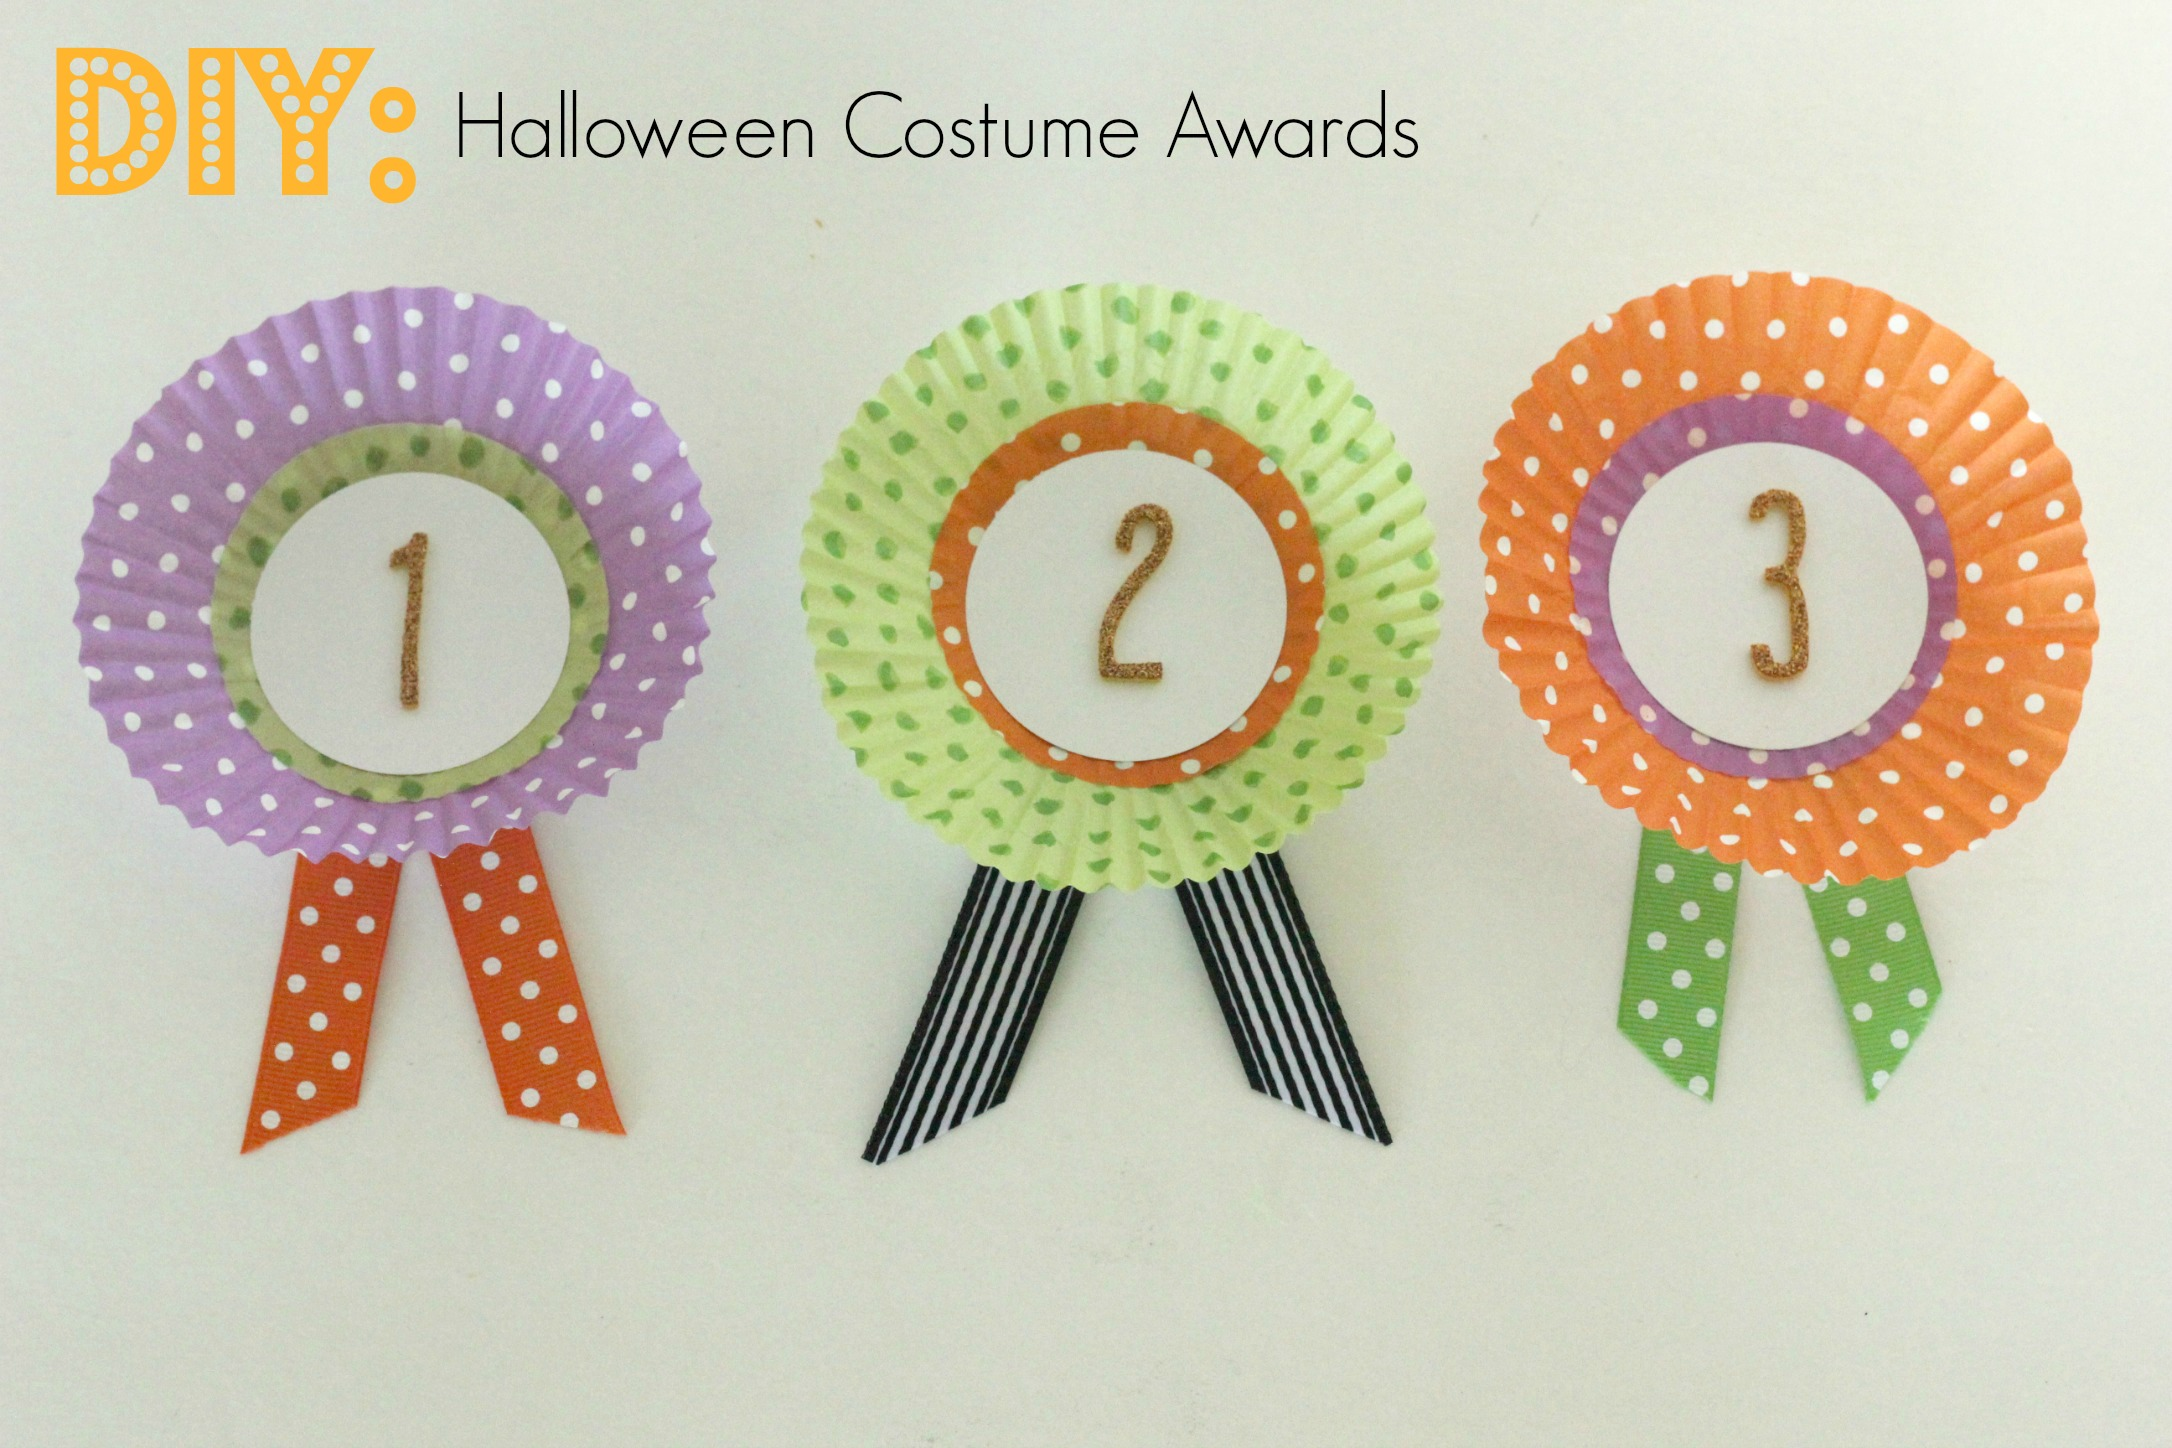 halloweenawards2a